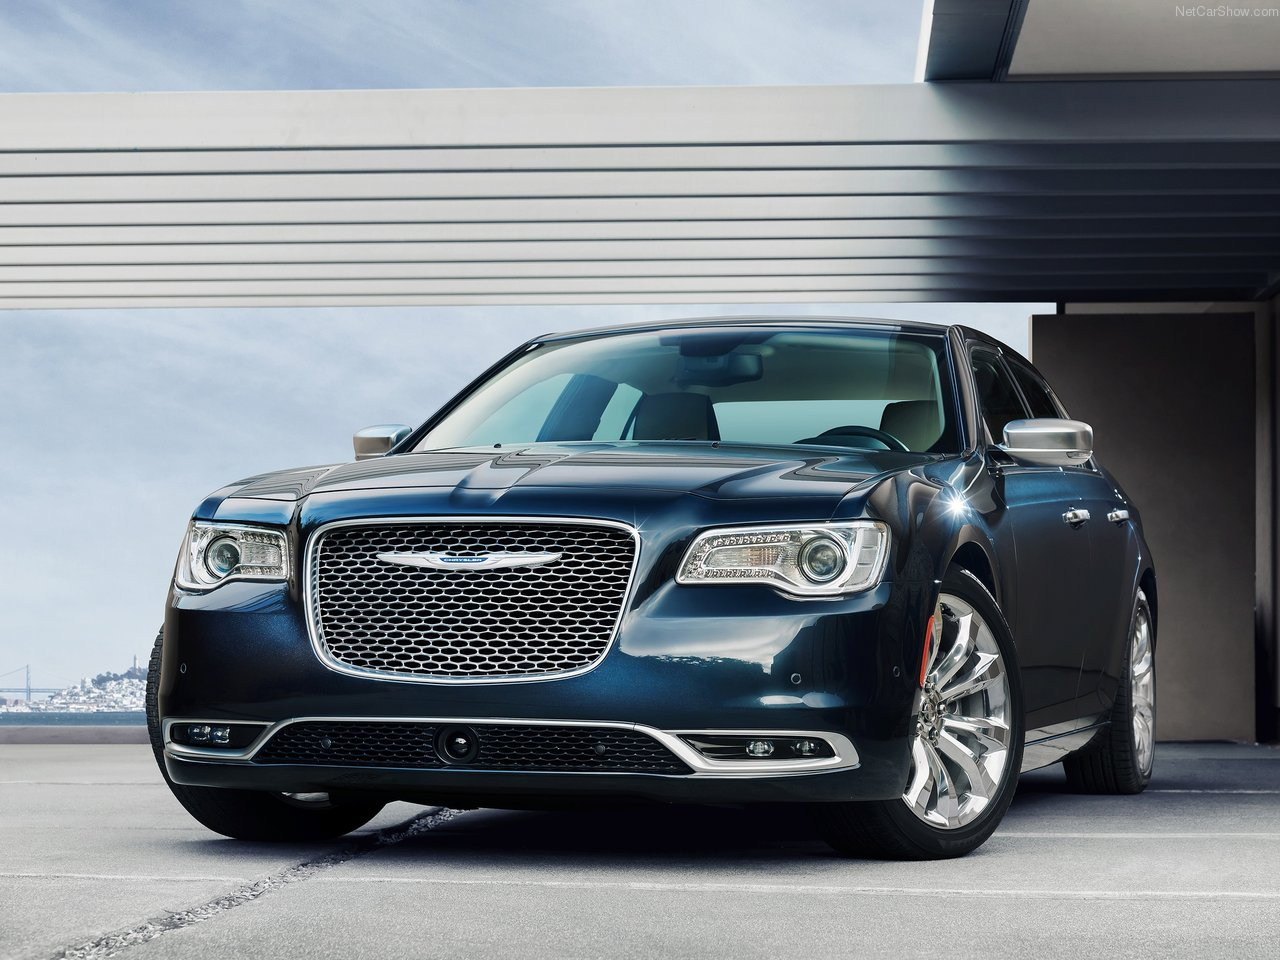 Chrysler 300 photo 141617